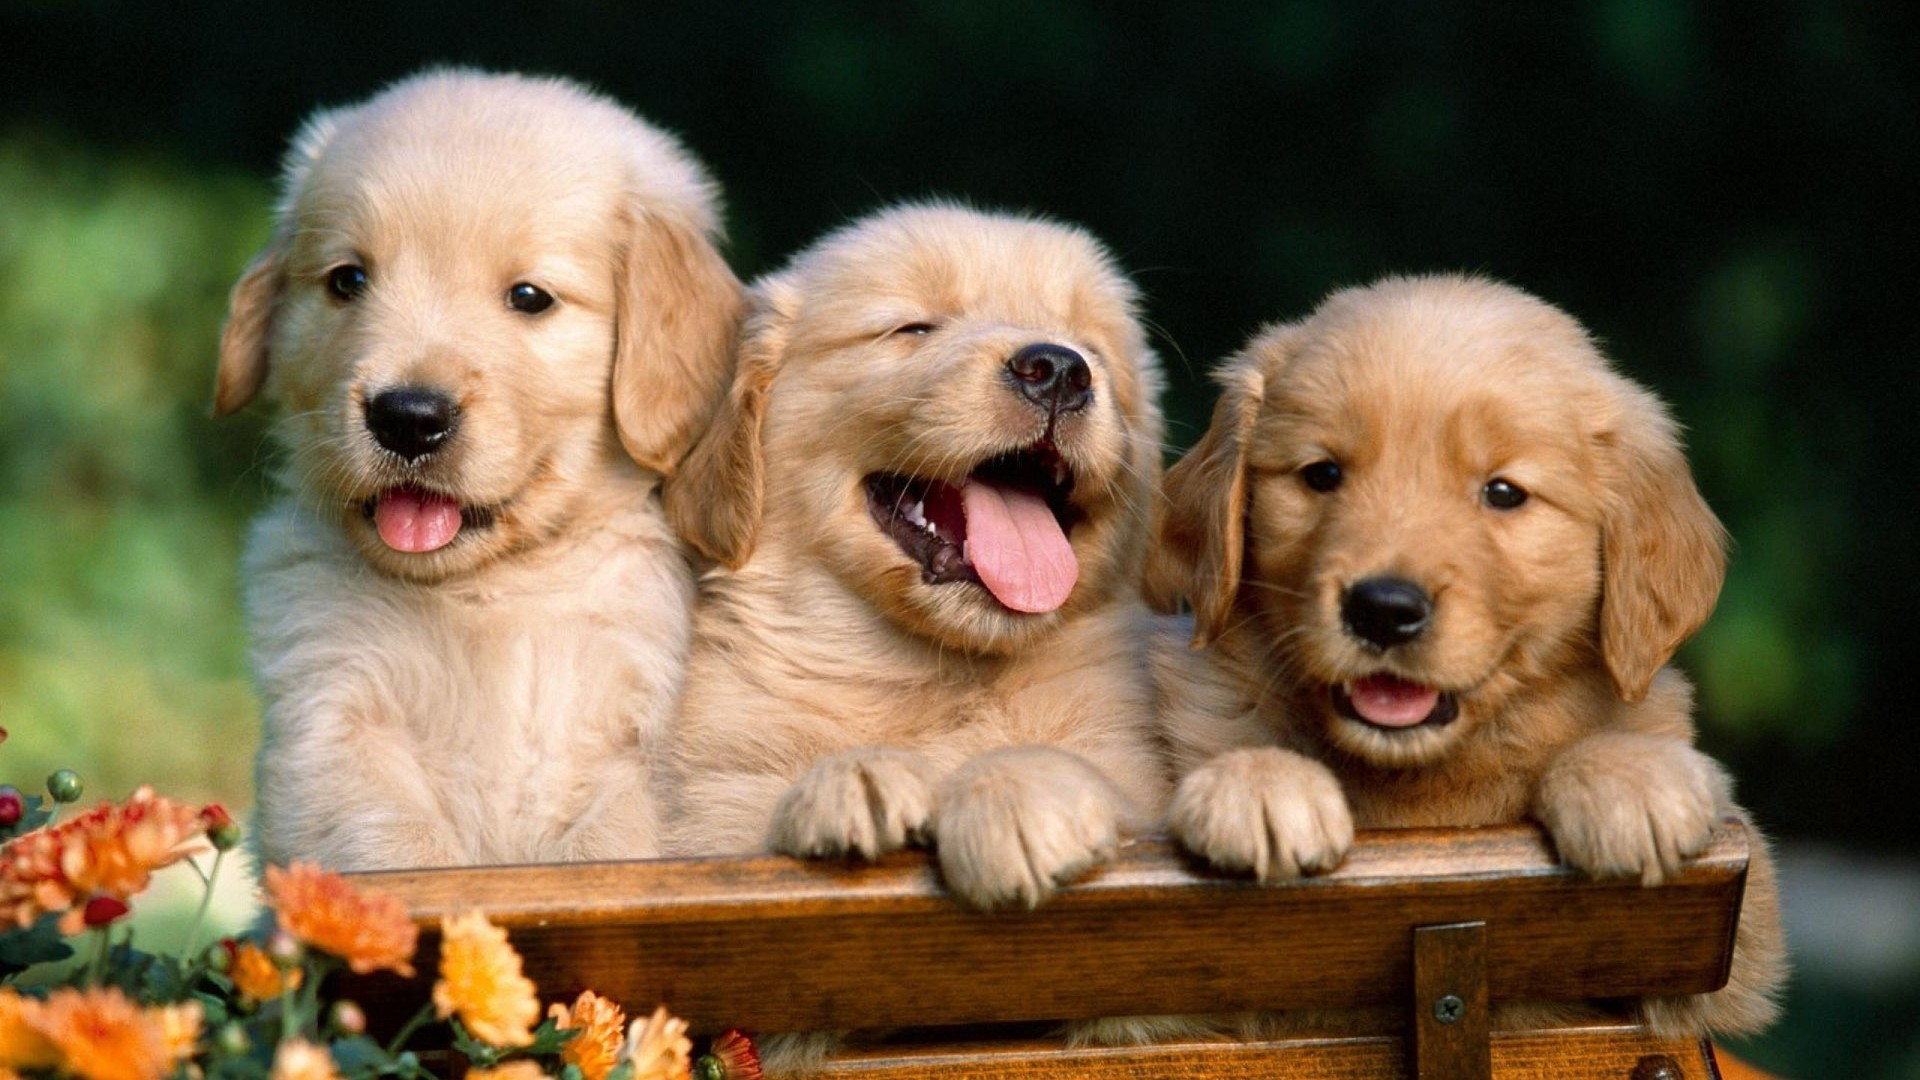 Puppies and kittens wallpapers 62 background pictures 1920x1080 kitten and puppy wallpapers mobile thecheapjerseys Choice Image